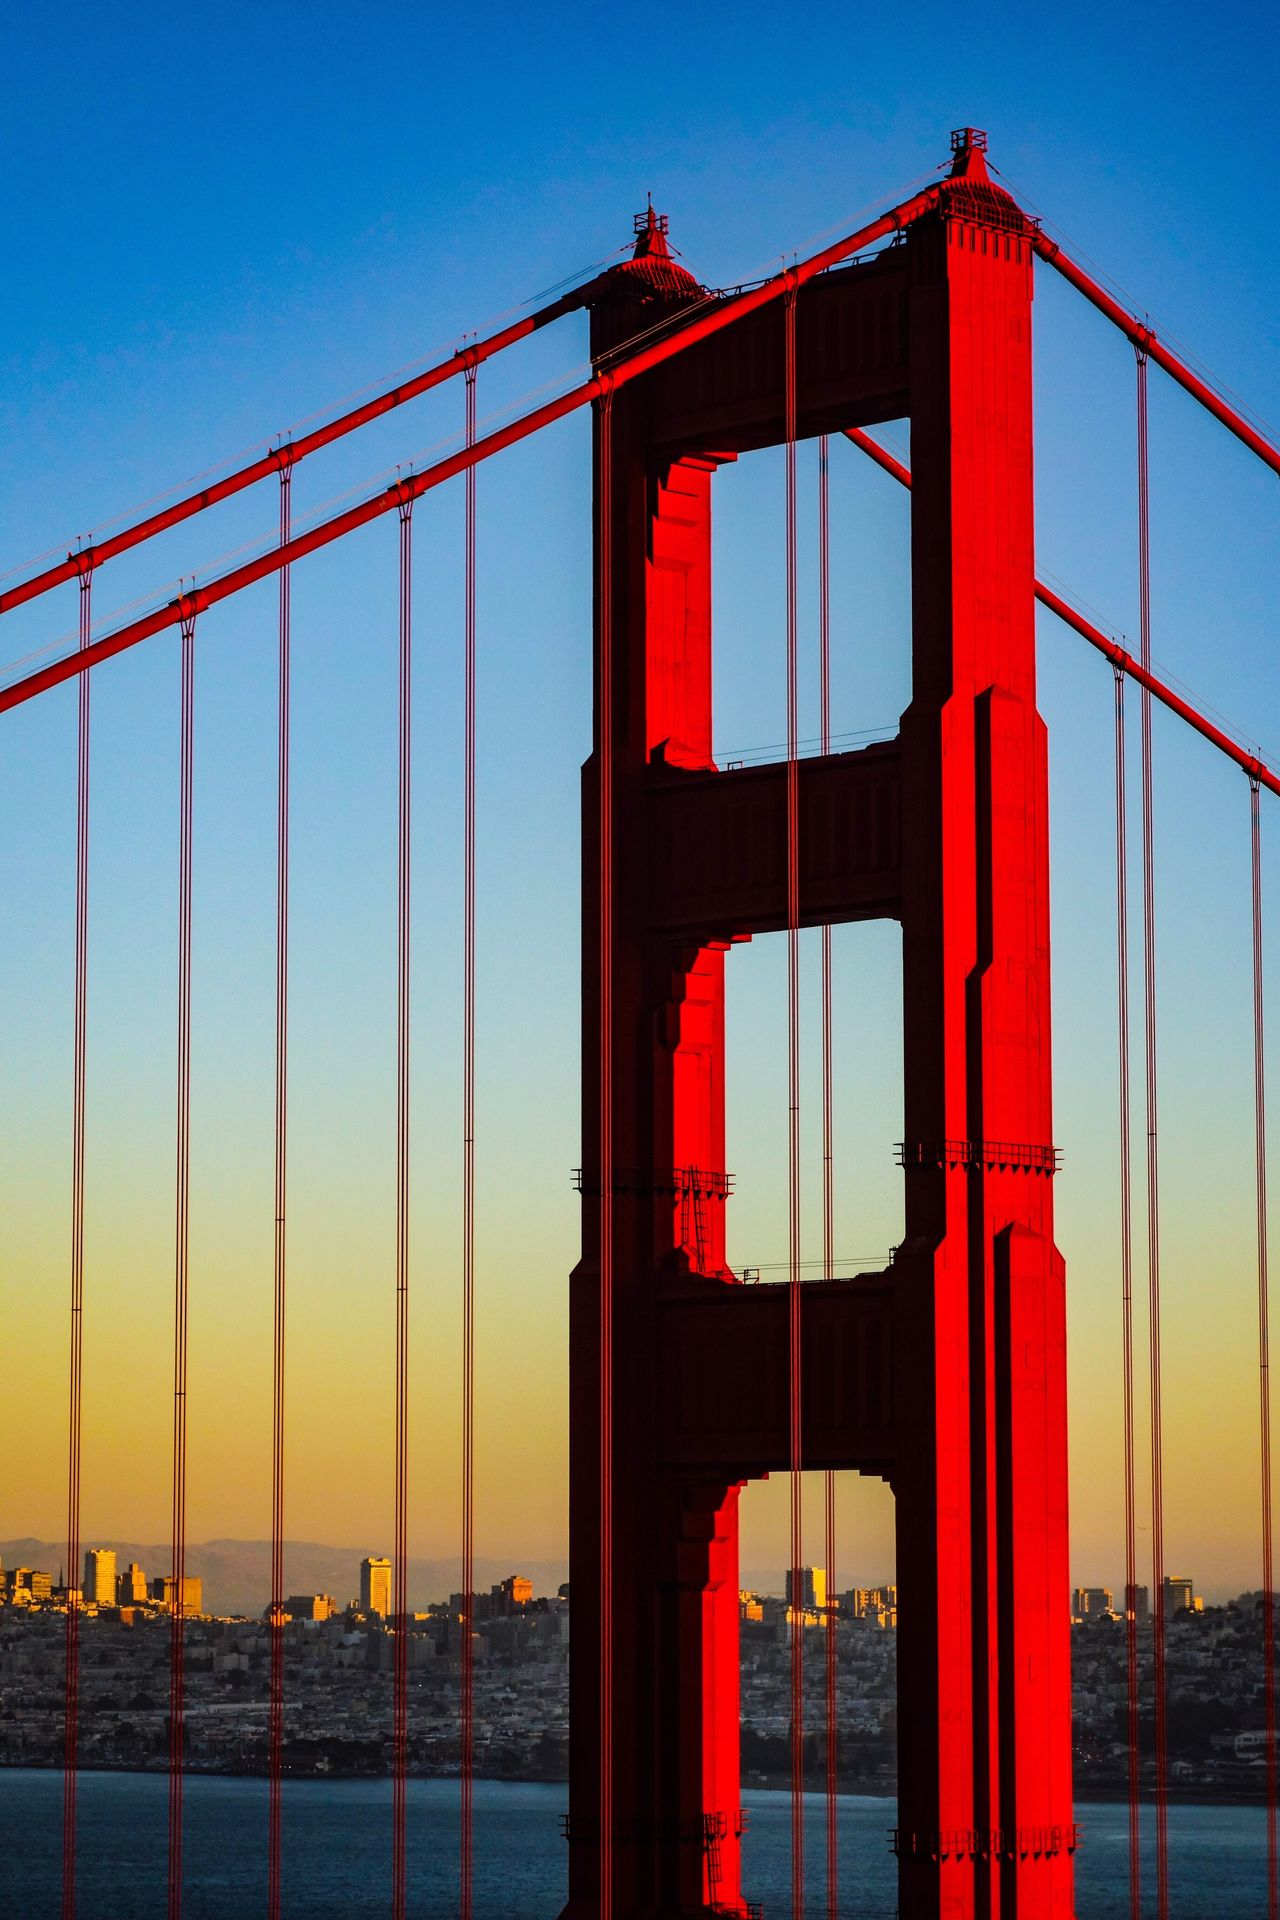 Bridge - Man Made Structure Suspension Bridge Red Orange Color Architecture Engineering Sea City Bay Area Golden Gate Bridge California San Francisco EyeEm Best Shots EyeEmNewHere Girder Evening Light Travel Travel Destinations Cityscape Bridge Urban Skyline Water Scenics Built Structure Connection The Great Outdoors - 2017 EyeEm Awards